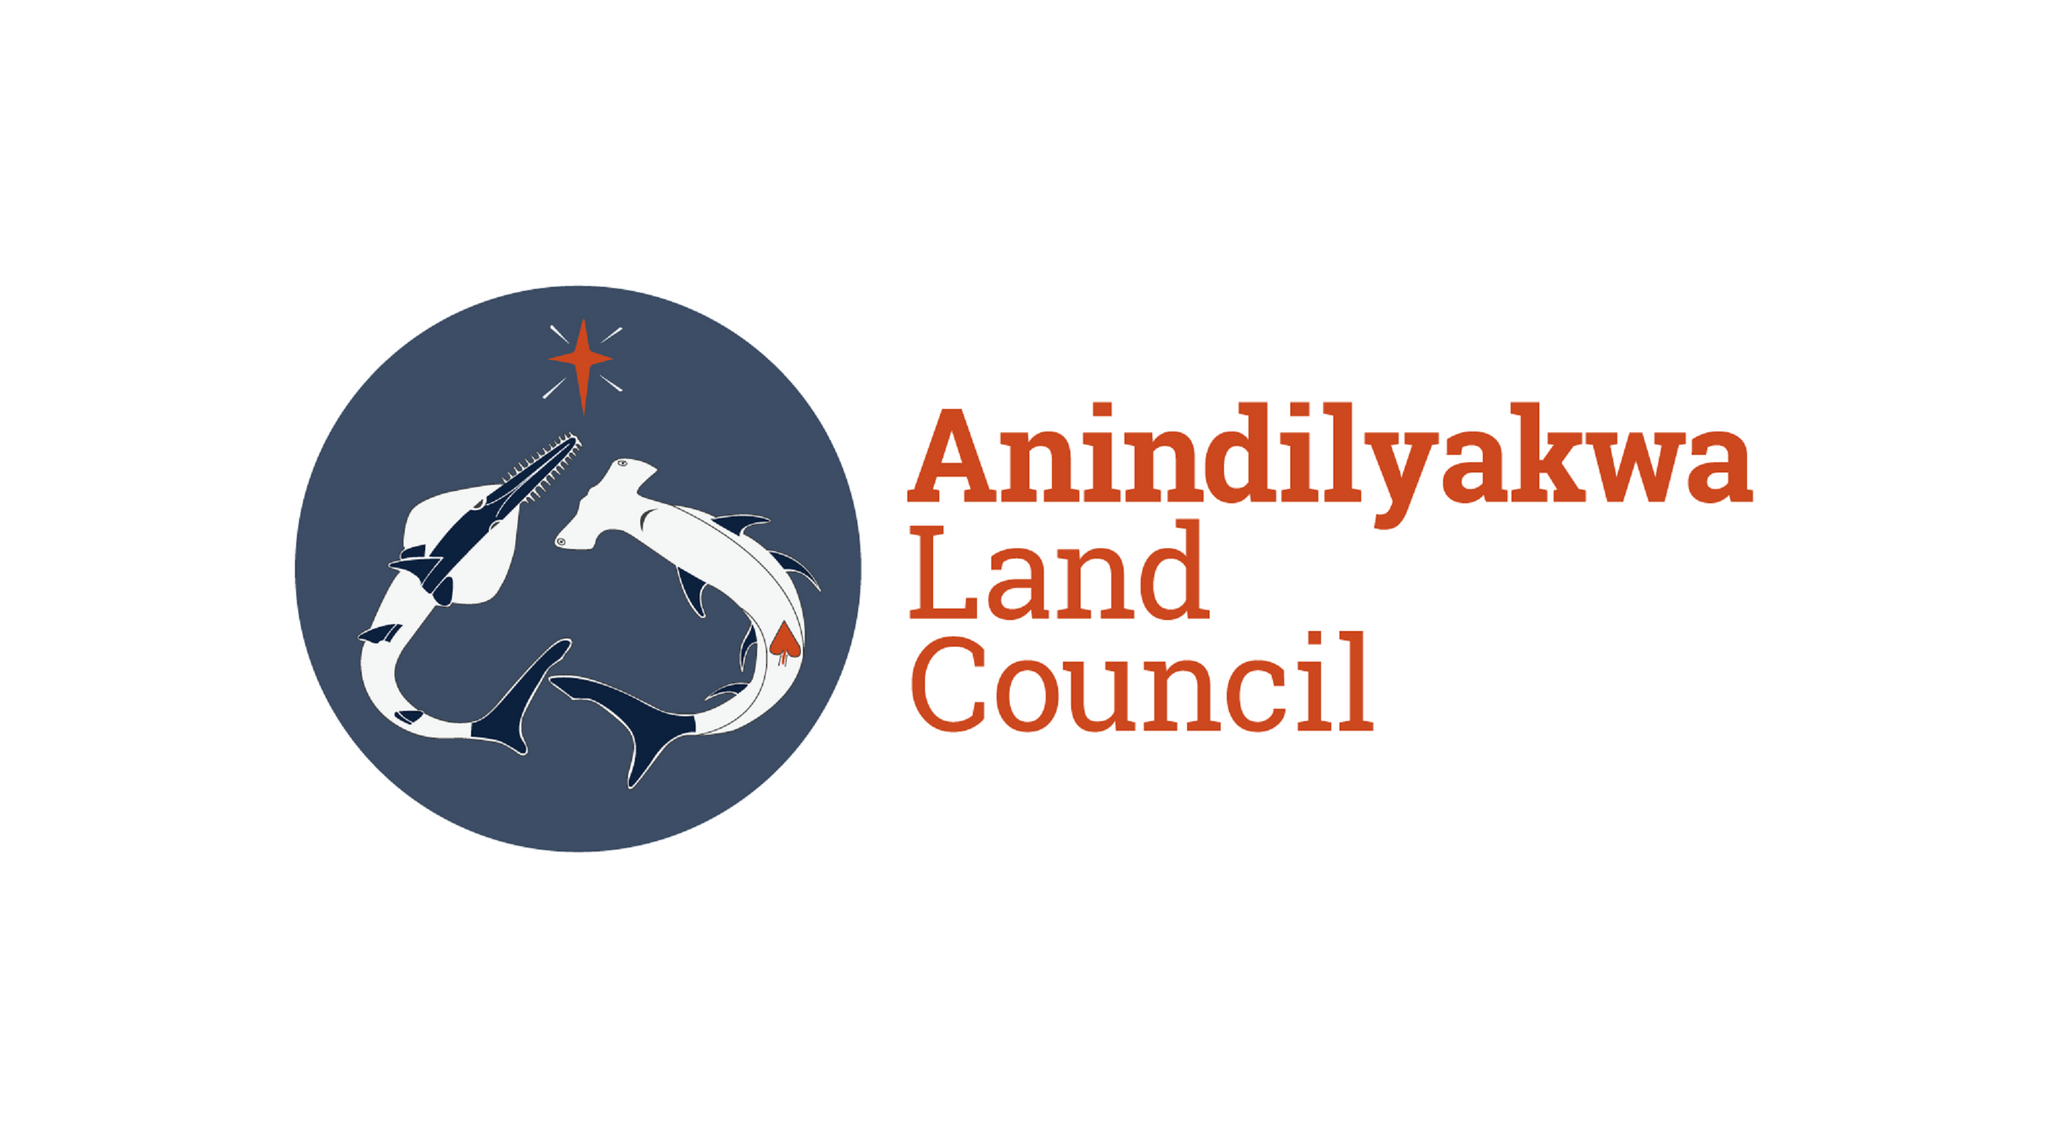 Anindilyakwa Land Council